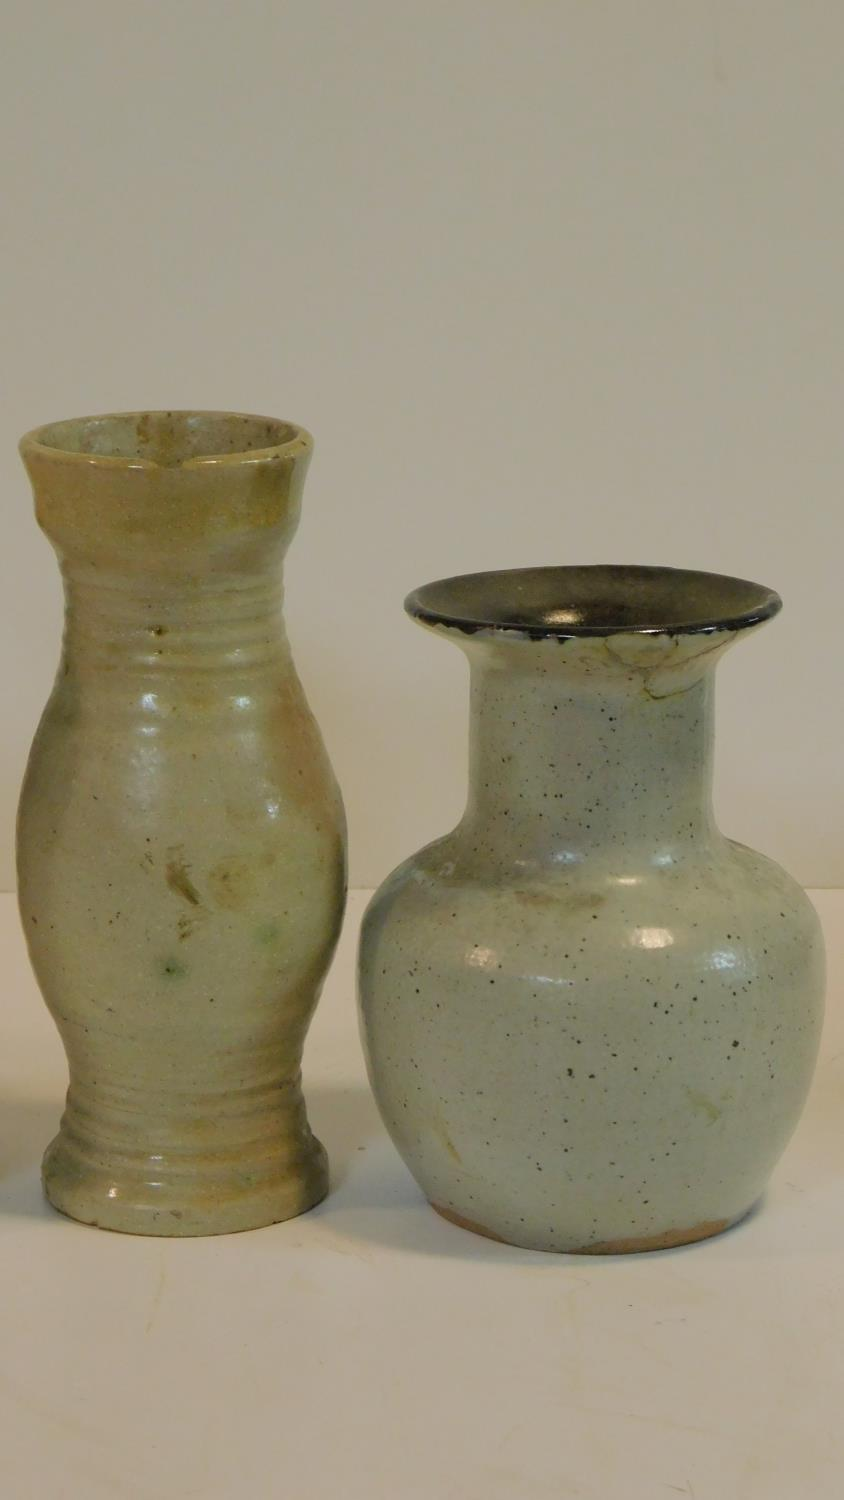 A miscellaneous collection of studio pottery, various jars, a bowl, ceramic chicken and a - Image 3 of 6